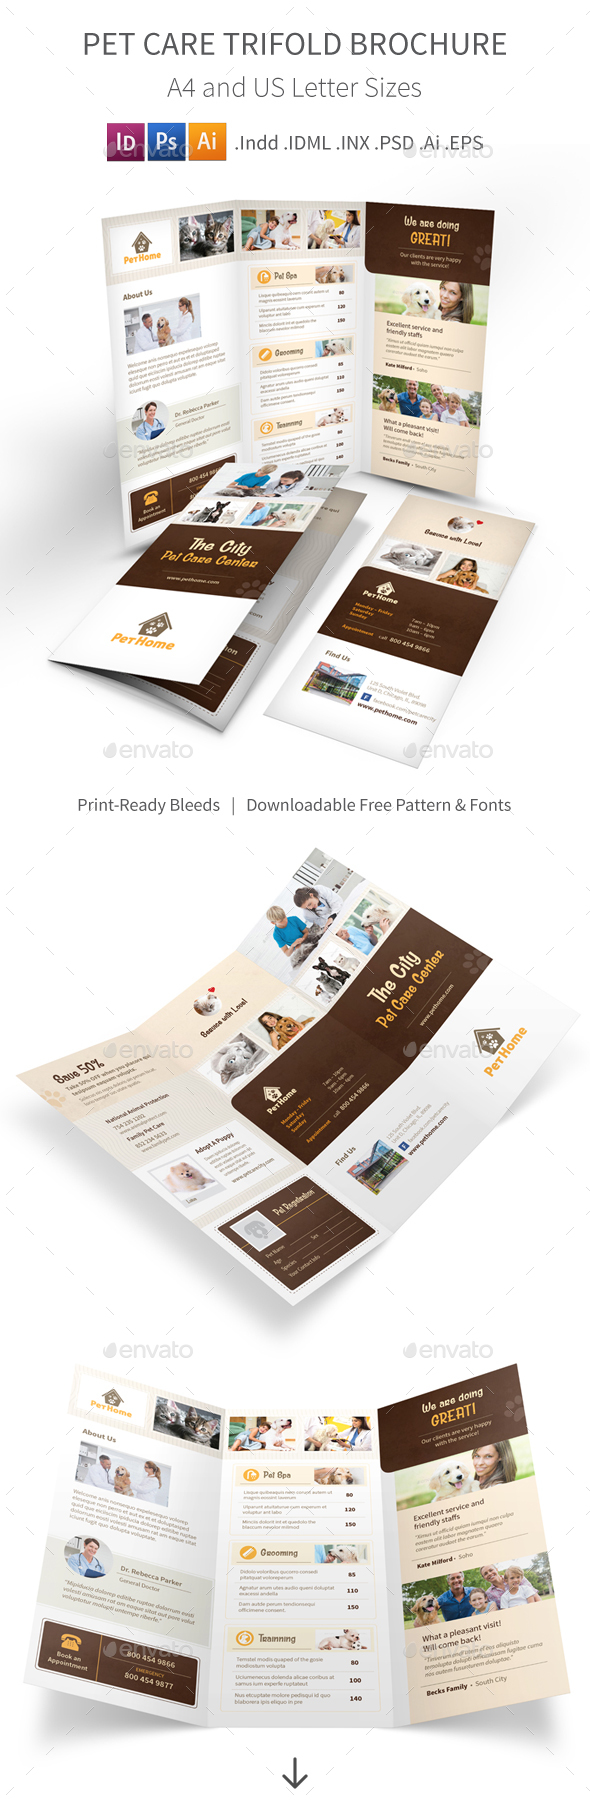 Pet Care Trifold Brochure 3 - Informational Brochures